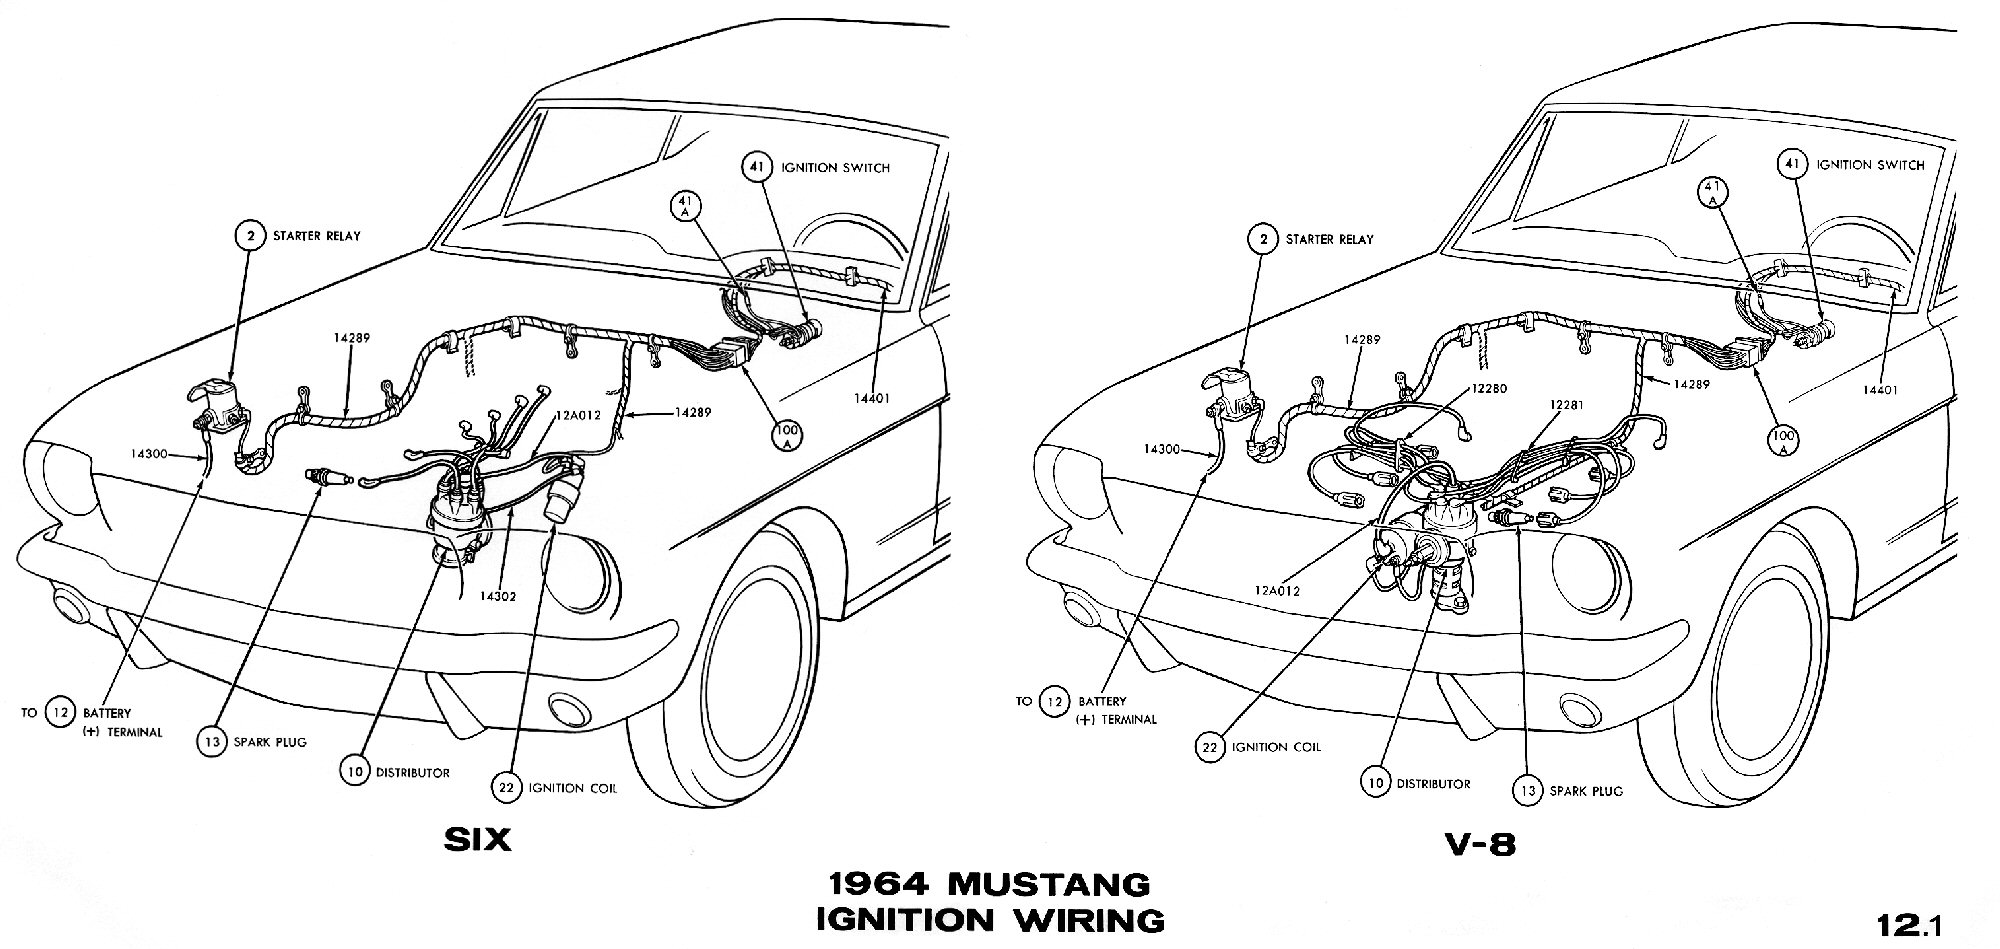 1964 Mustang Wiring Diagrams Average Joe Restoration 1969 Corvette Diagram Exterior Sm1964c